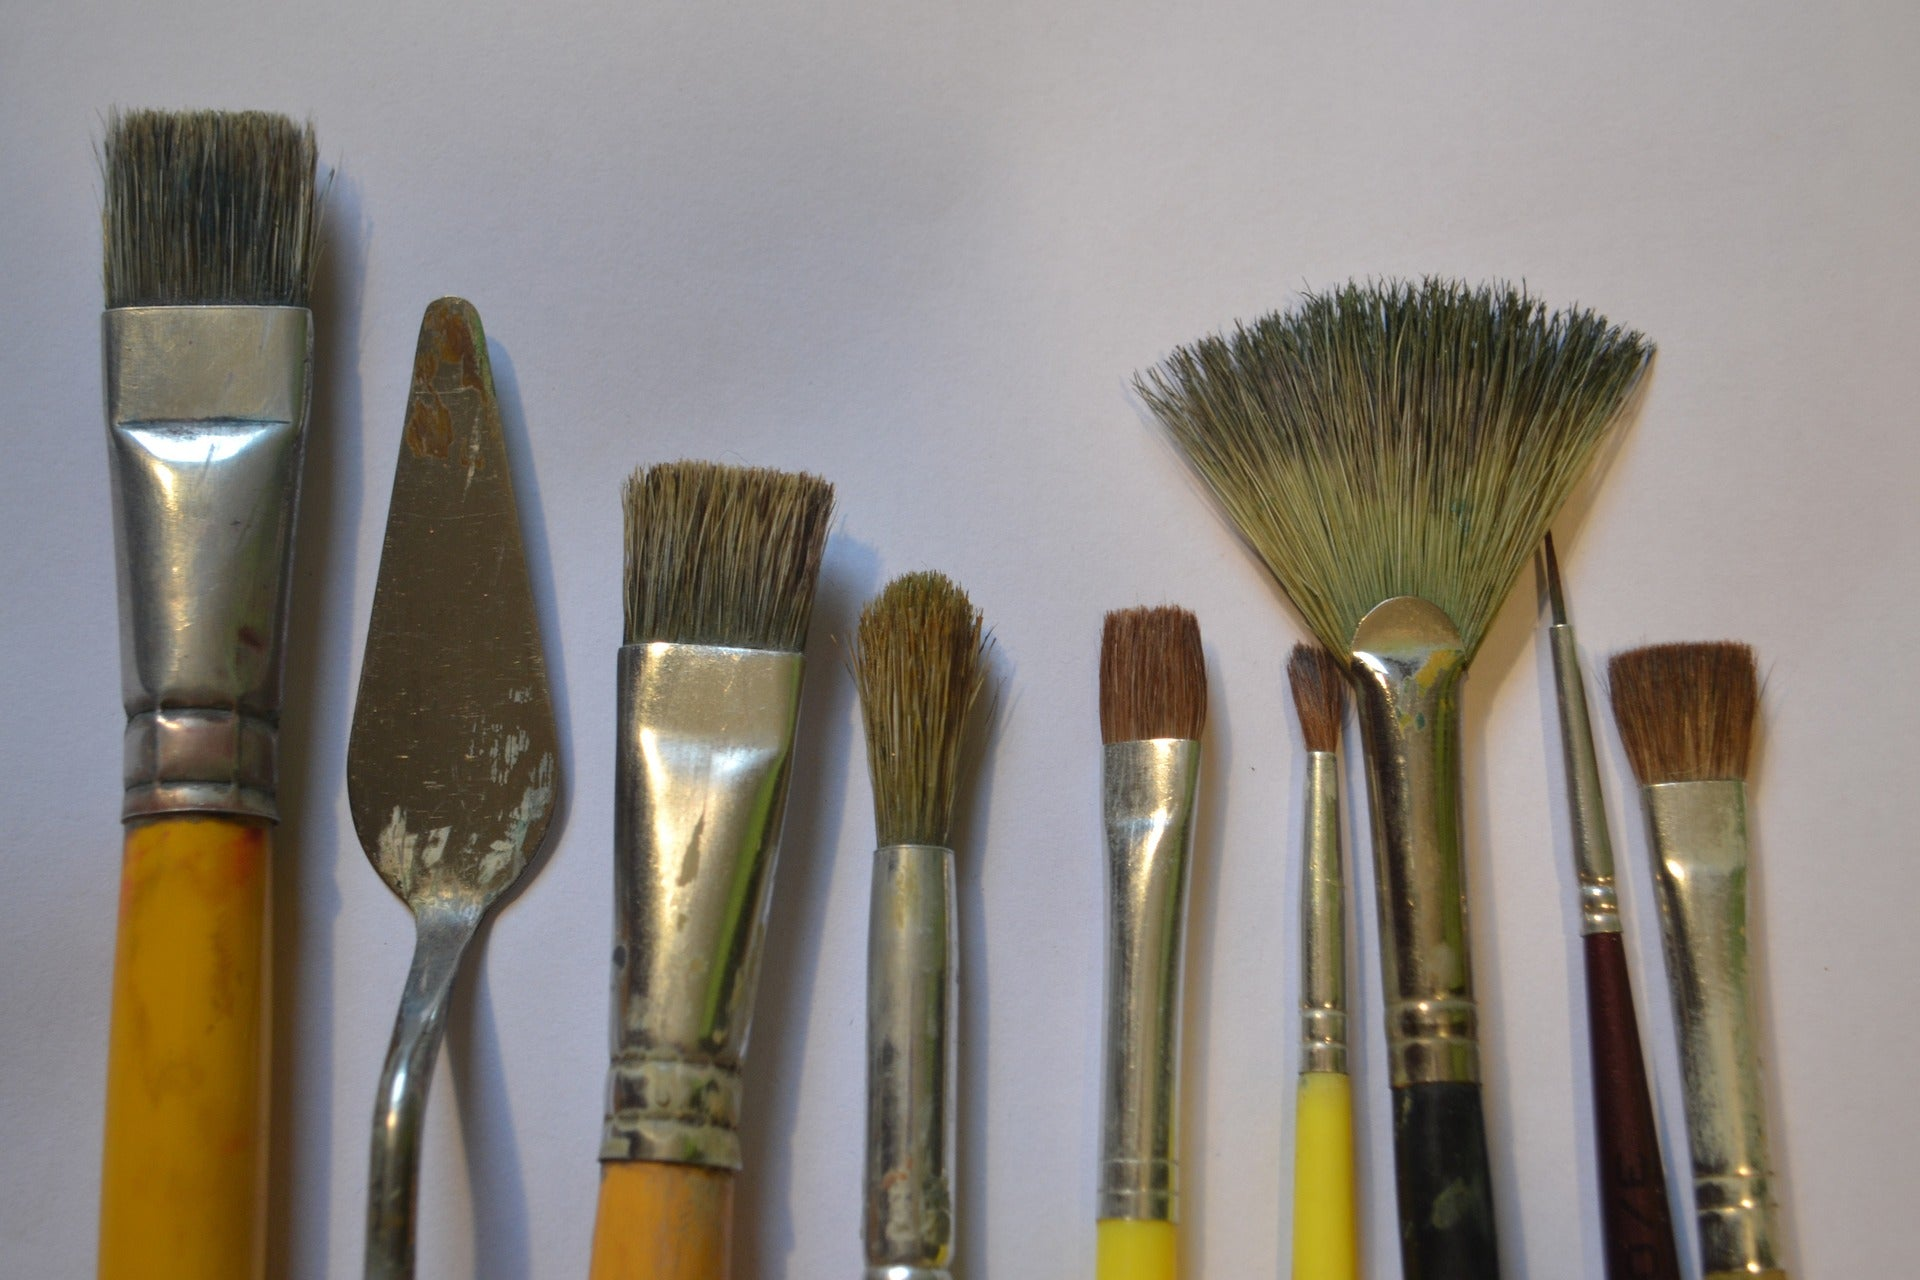 brushes and painting knives